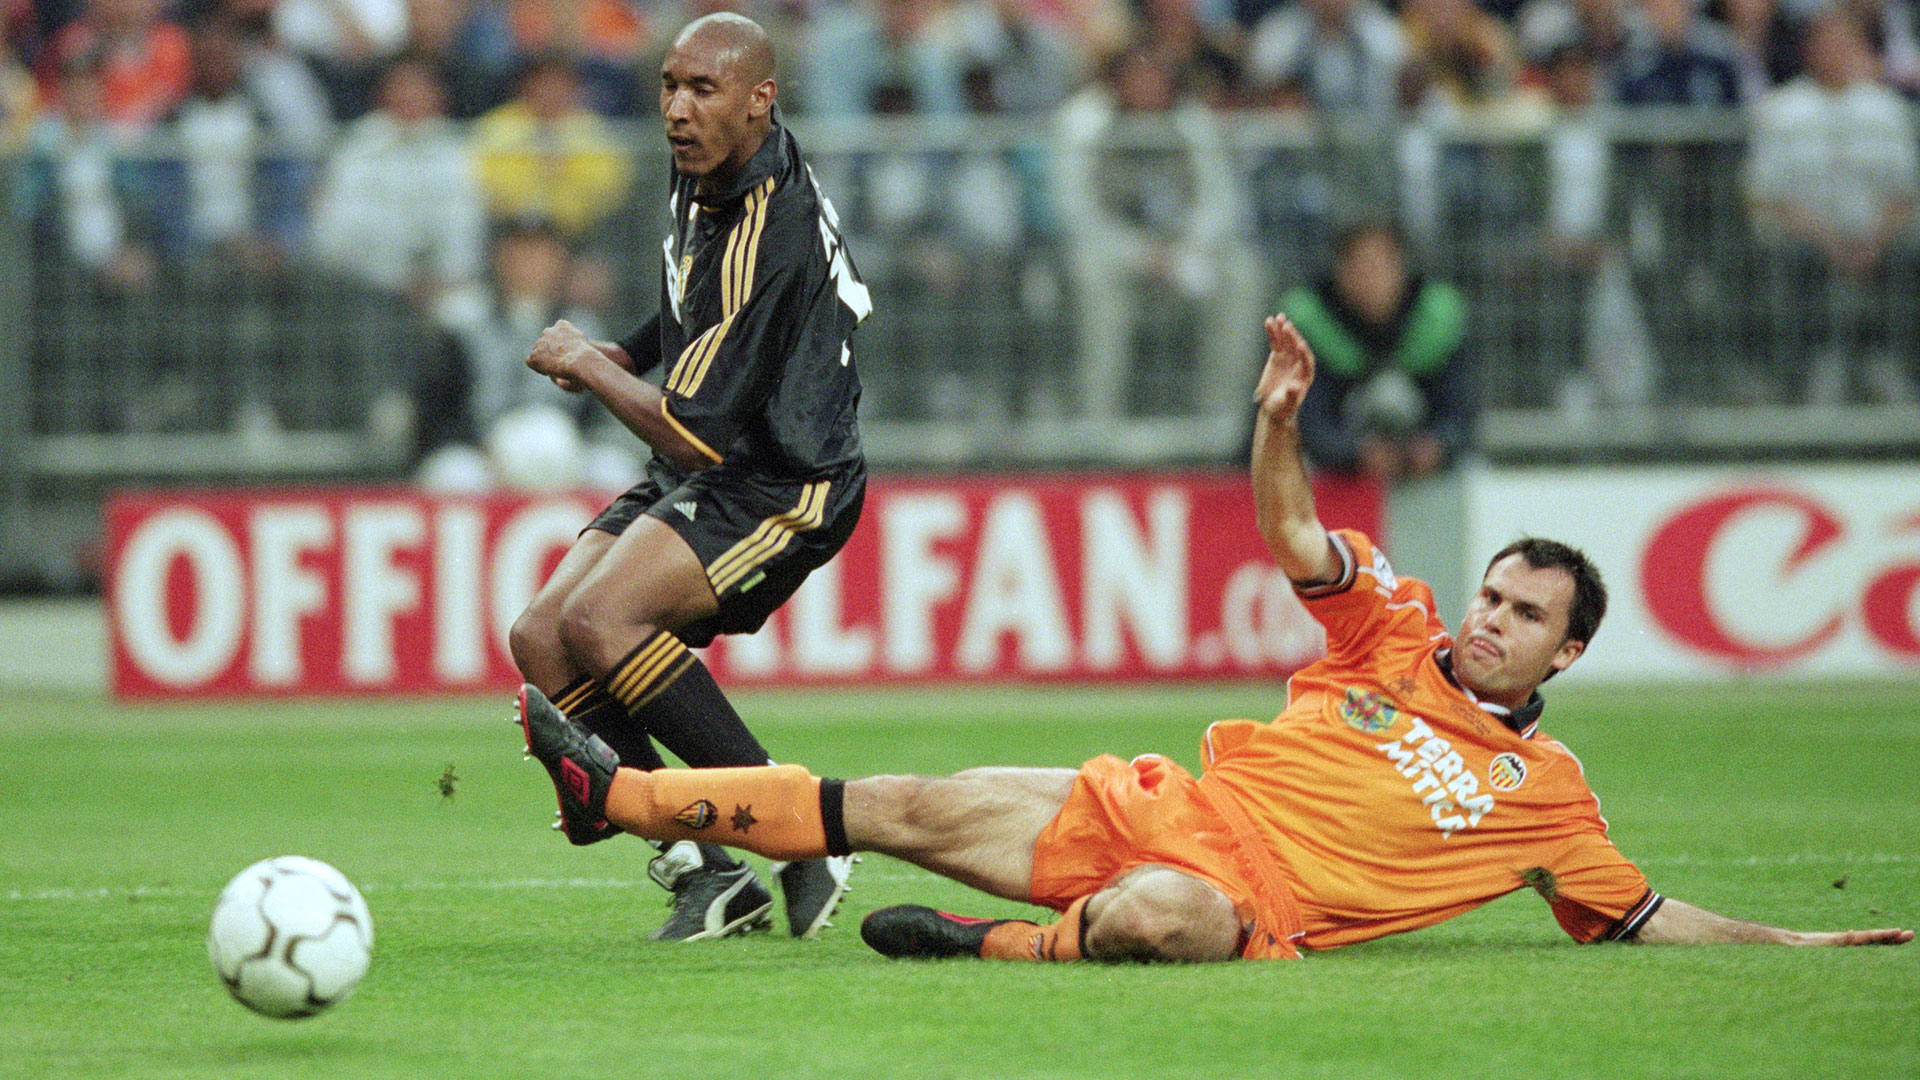 Nicolas Anelka Real Madrid Valencia Champions League